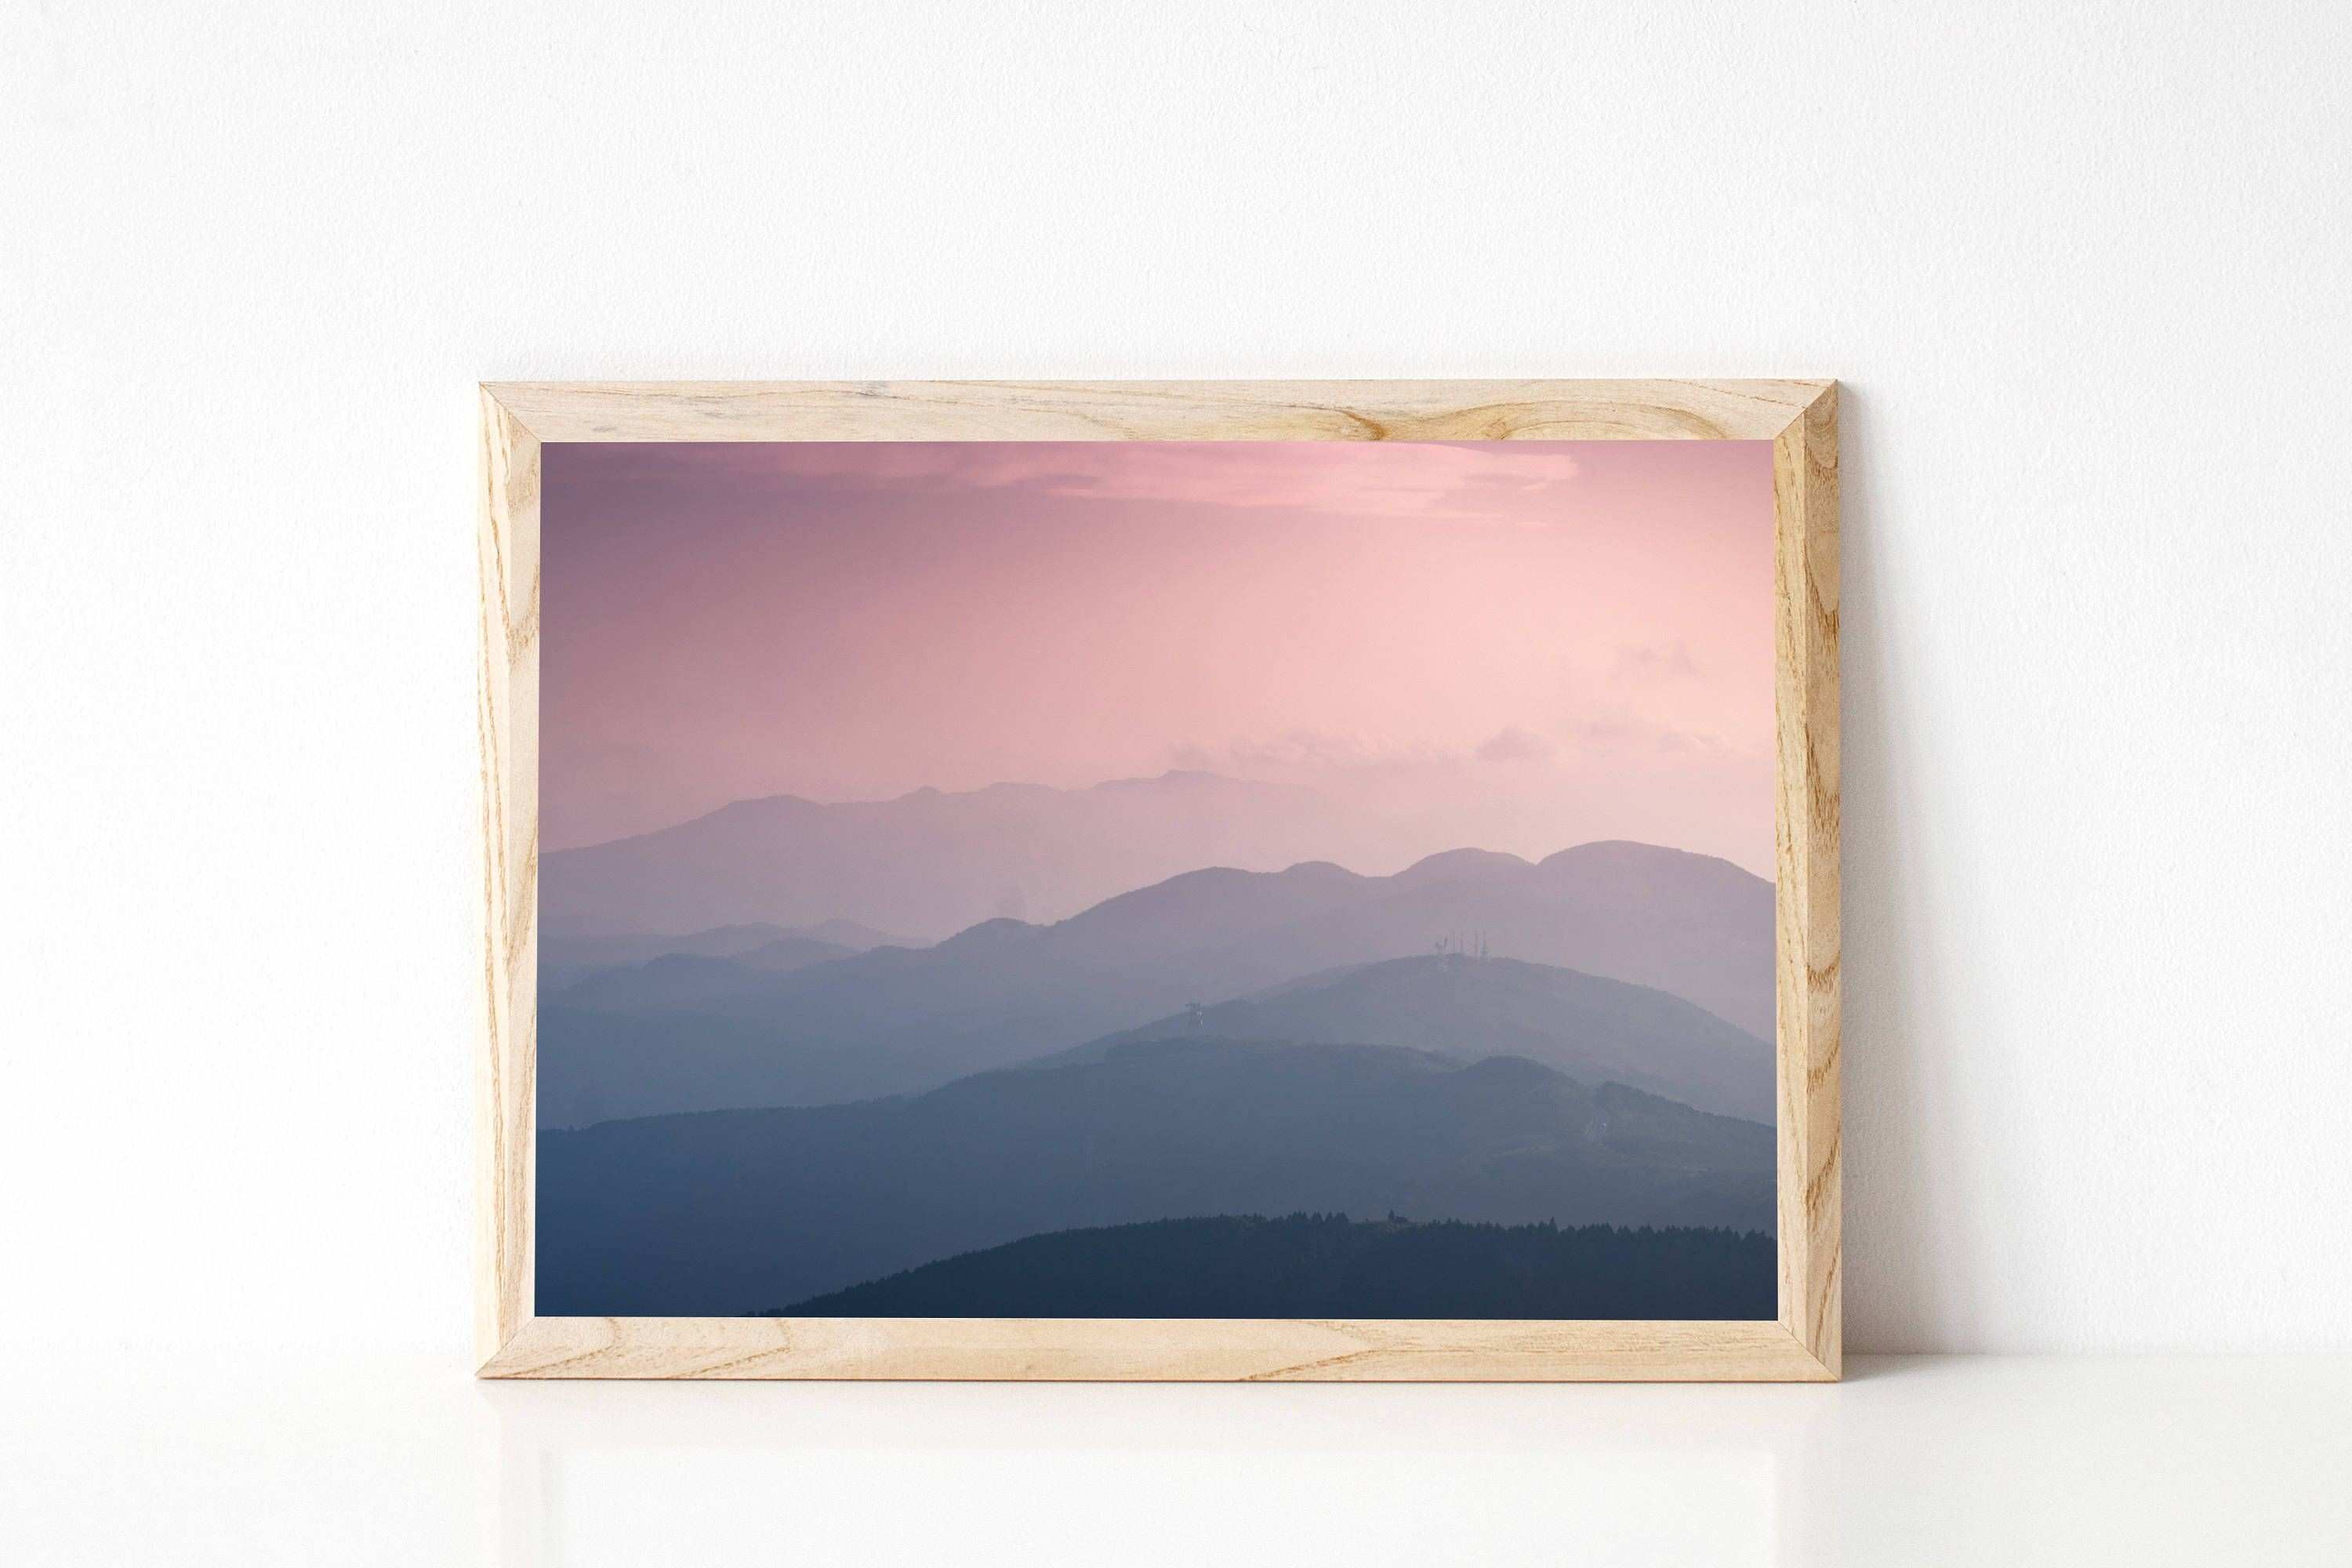 Serene mountains blush pink mountain scene able art